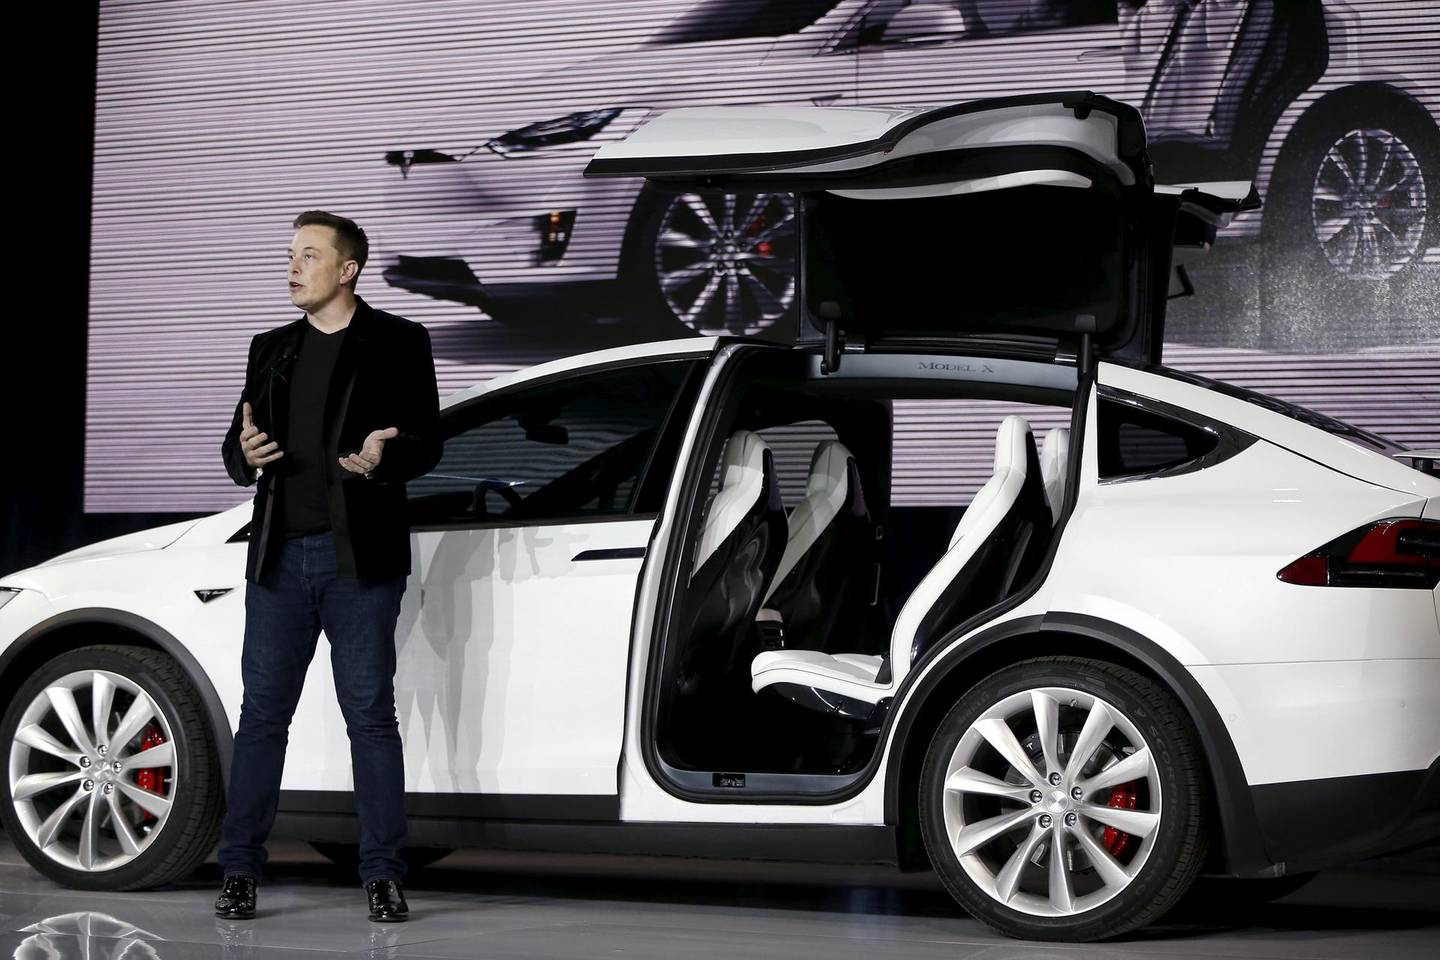 FILE PHOTO: Tesla Motors CEO Elon Musk introduces the falcon wing door on the Model X electric sports-utility vehicles during a presentation in Fremont, California September 29, 2015. Tesla Motors delivered the first of its long-awaited Model X electric sports-utility vehicles on Tuesday, a product investors are counting on to make the pioneering company profitable after years of losses. REUTERS/Stephen Lam/File Photo